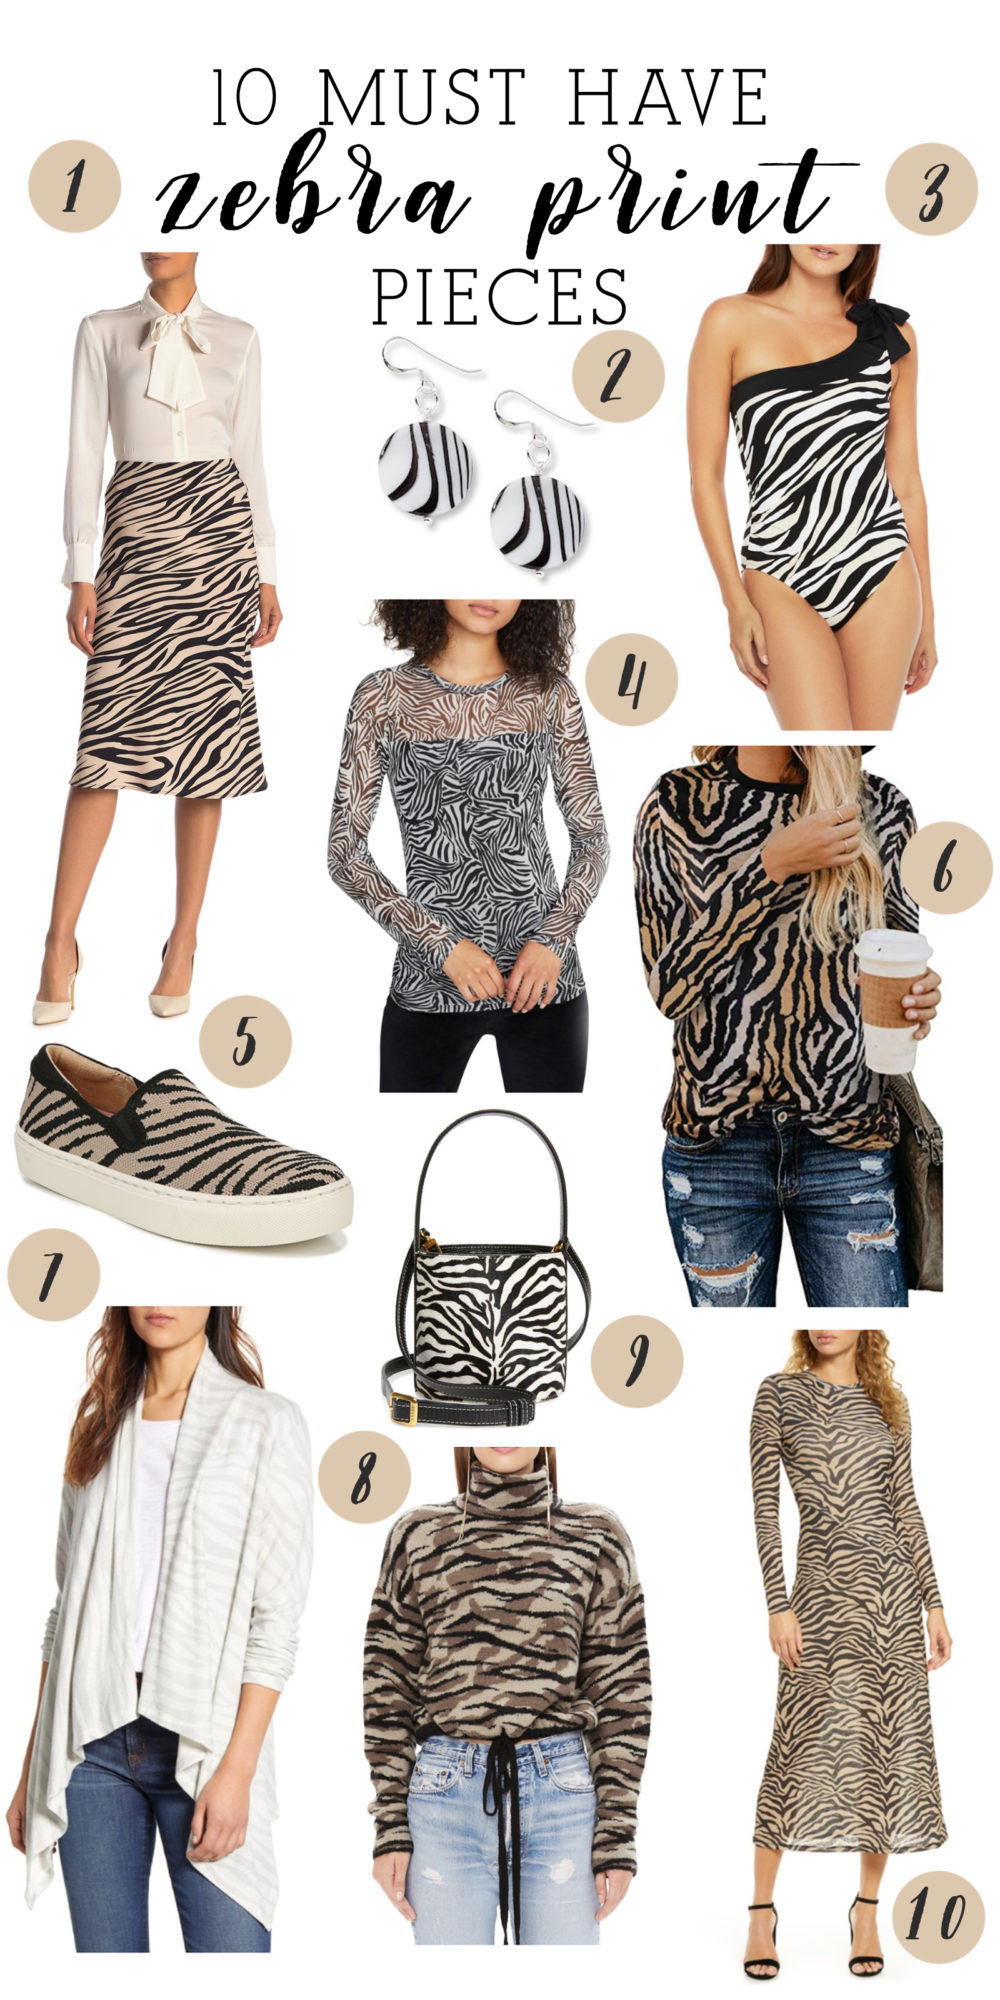 Zebra Print Sweaters | Zebra Print Dress| Zebra Print Shoes | Zebra Print Swimsuit